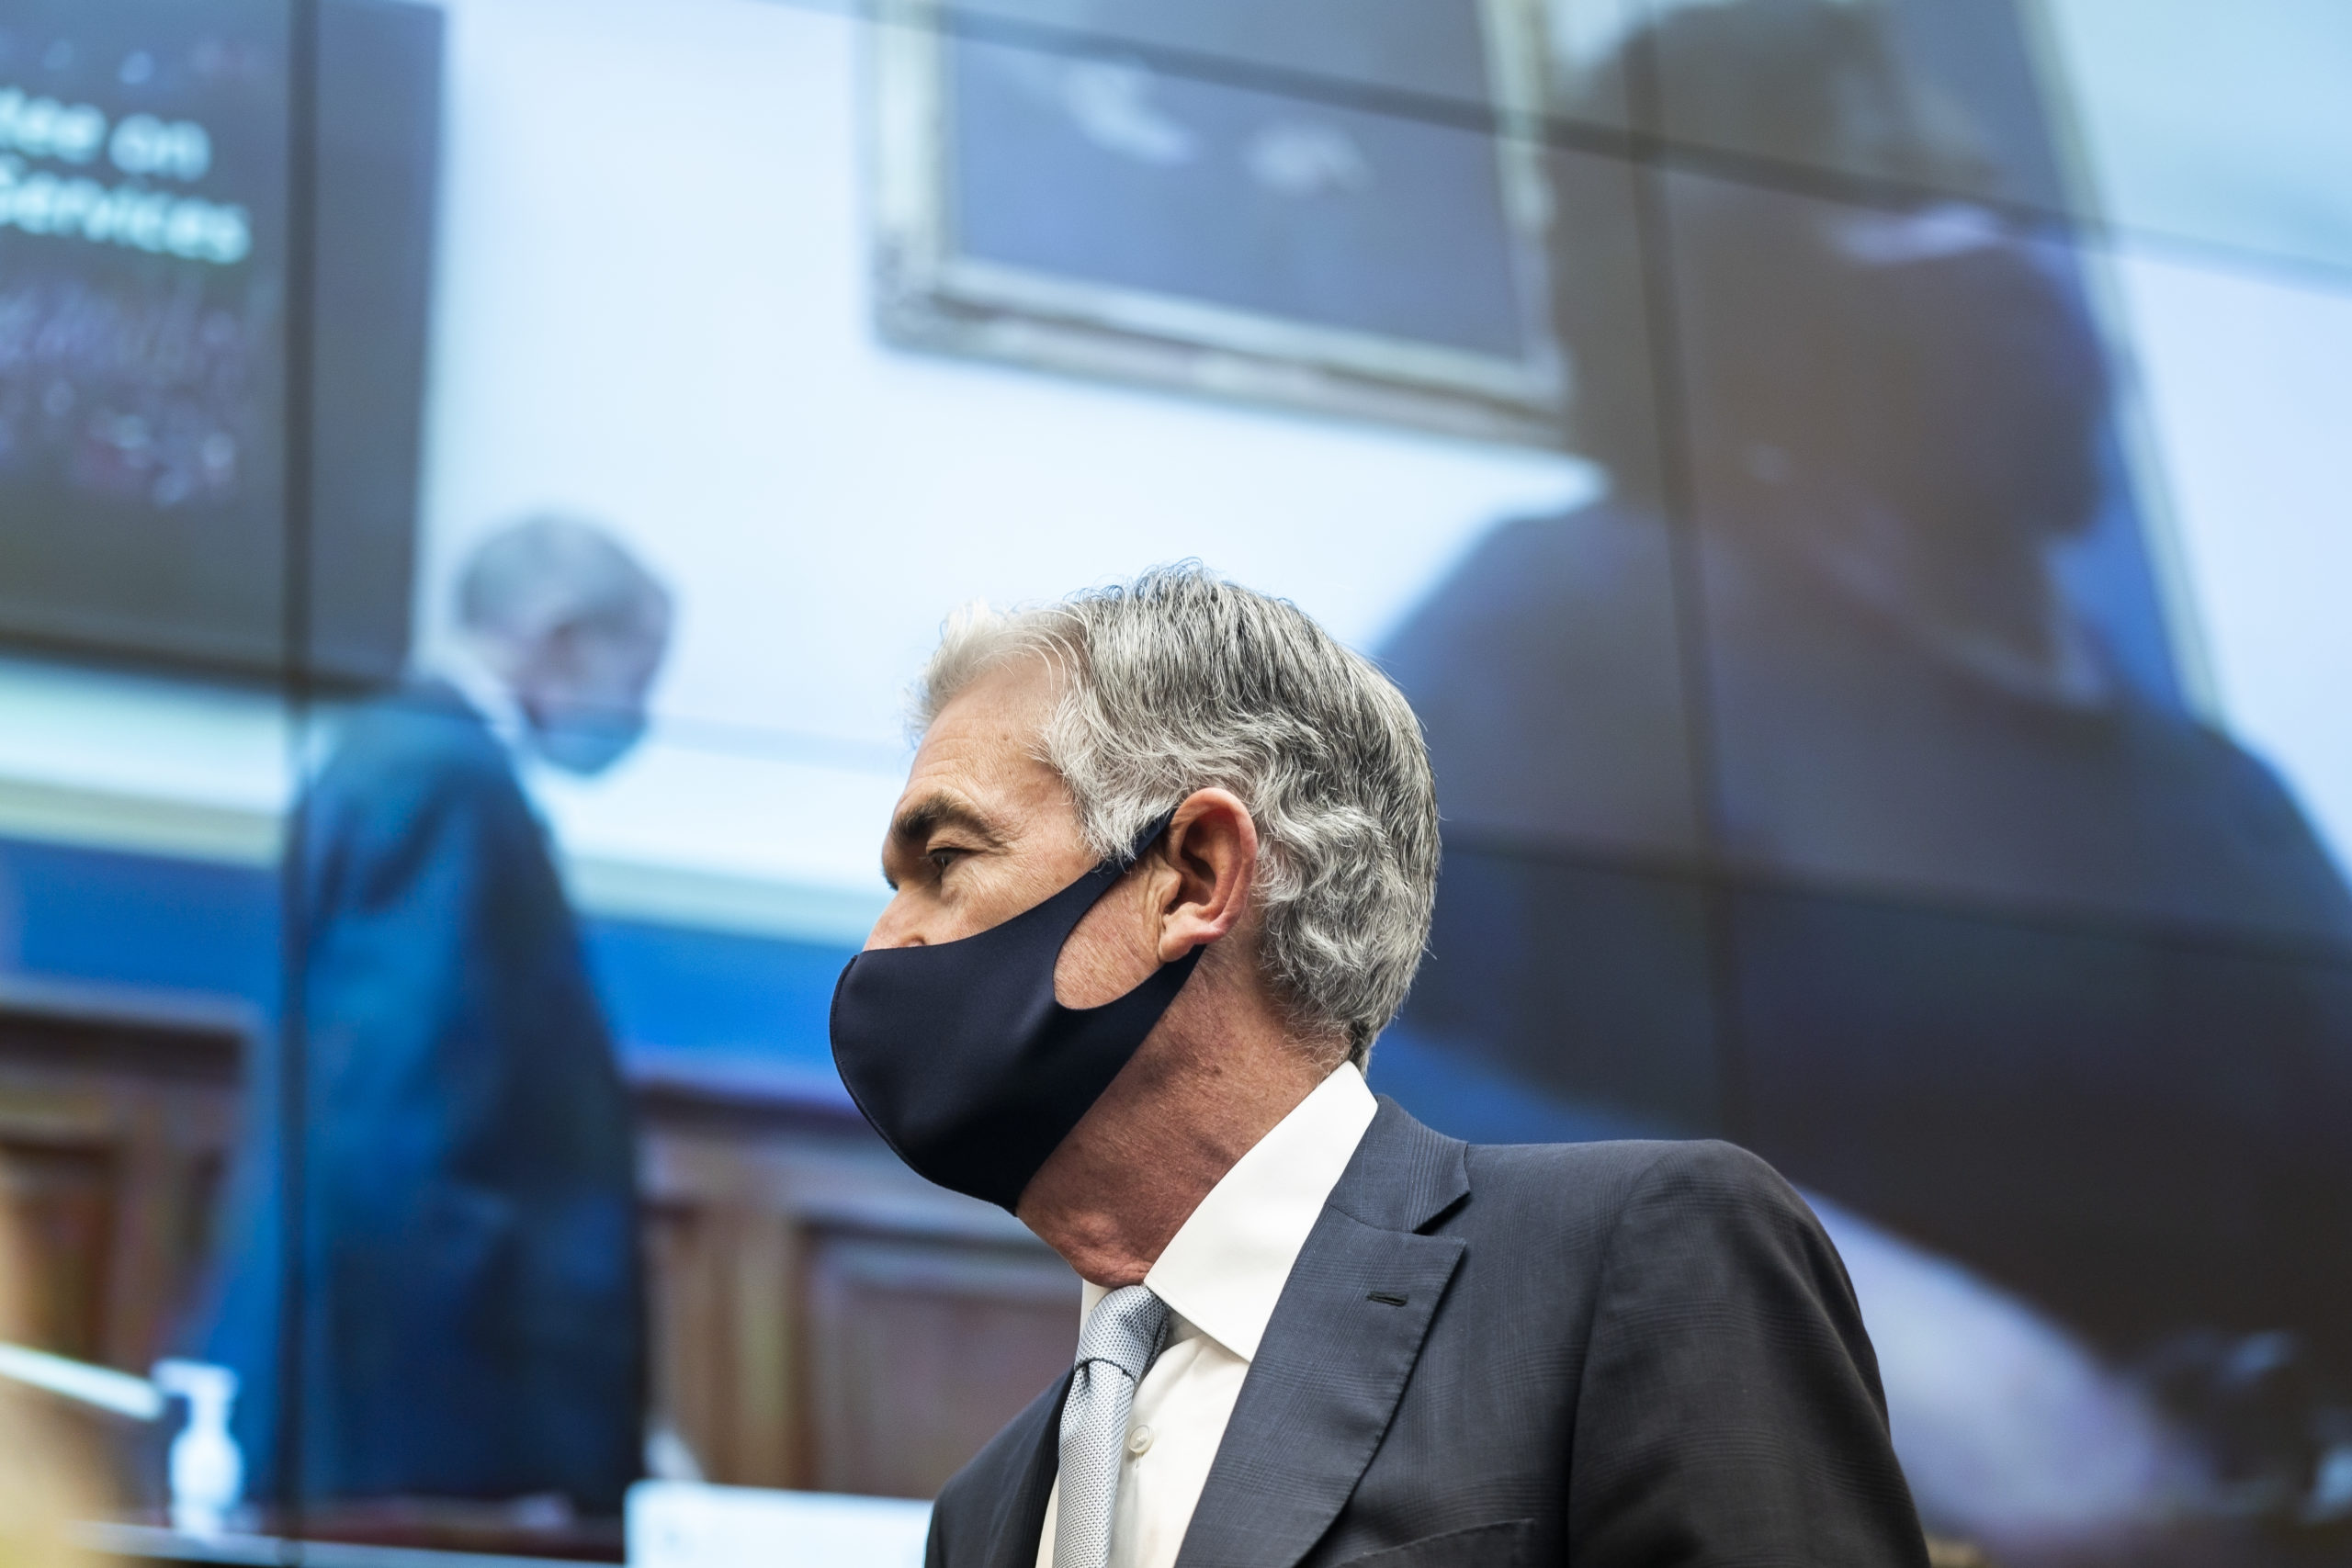 Federal Reserve Chair Jerome Powell prepares to speak at a House Financial Services Committee hearing in December. (Jim Lo Scalzo/Pool/Getty Images)